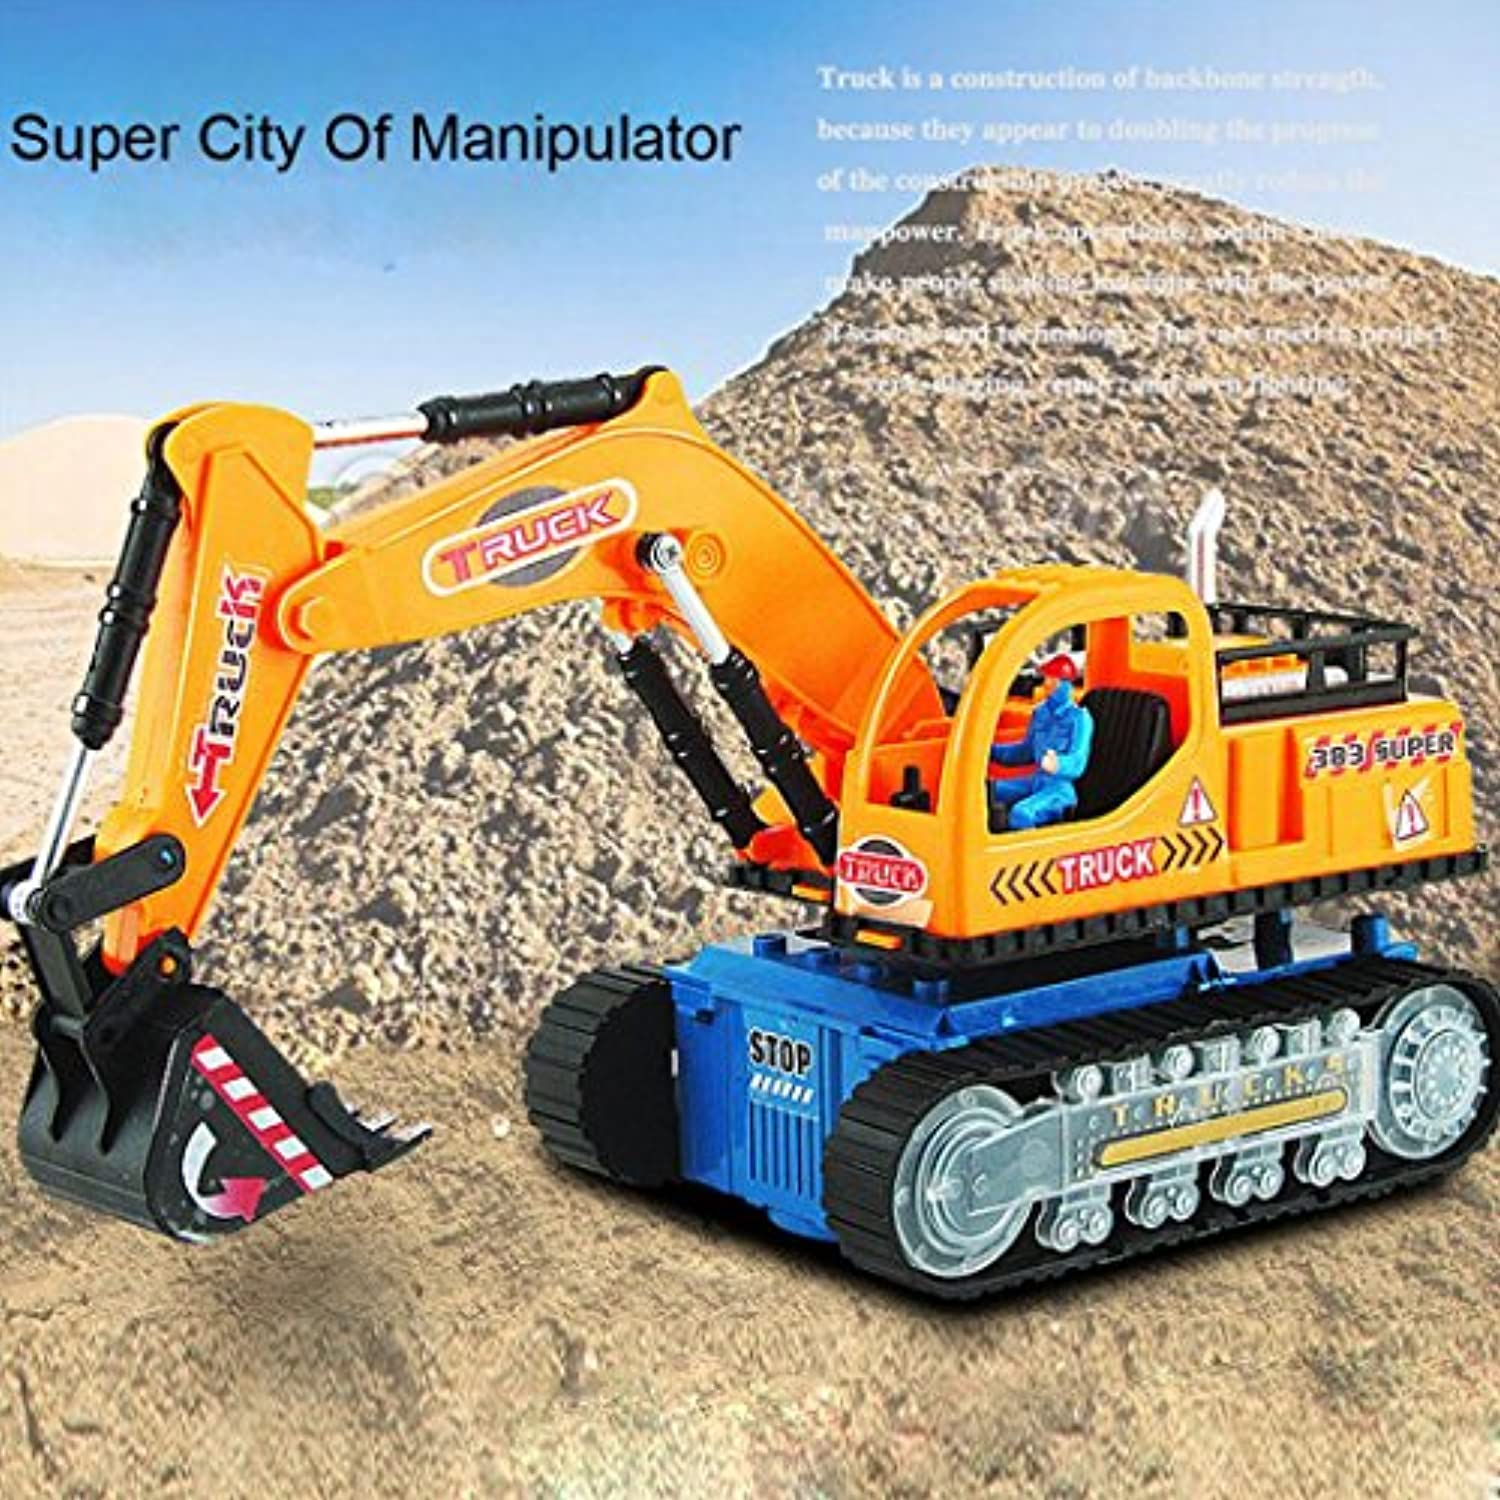 inverleeおもちゃfor Boys LED Electric Construction Vehicle Excavatorトラックモデルwithライトand Music Great Gift for Kids マルチカラー IN